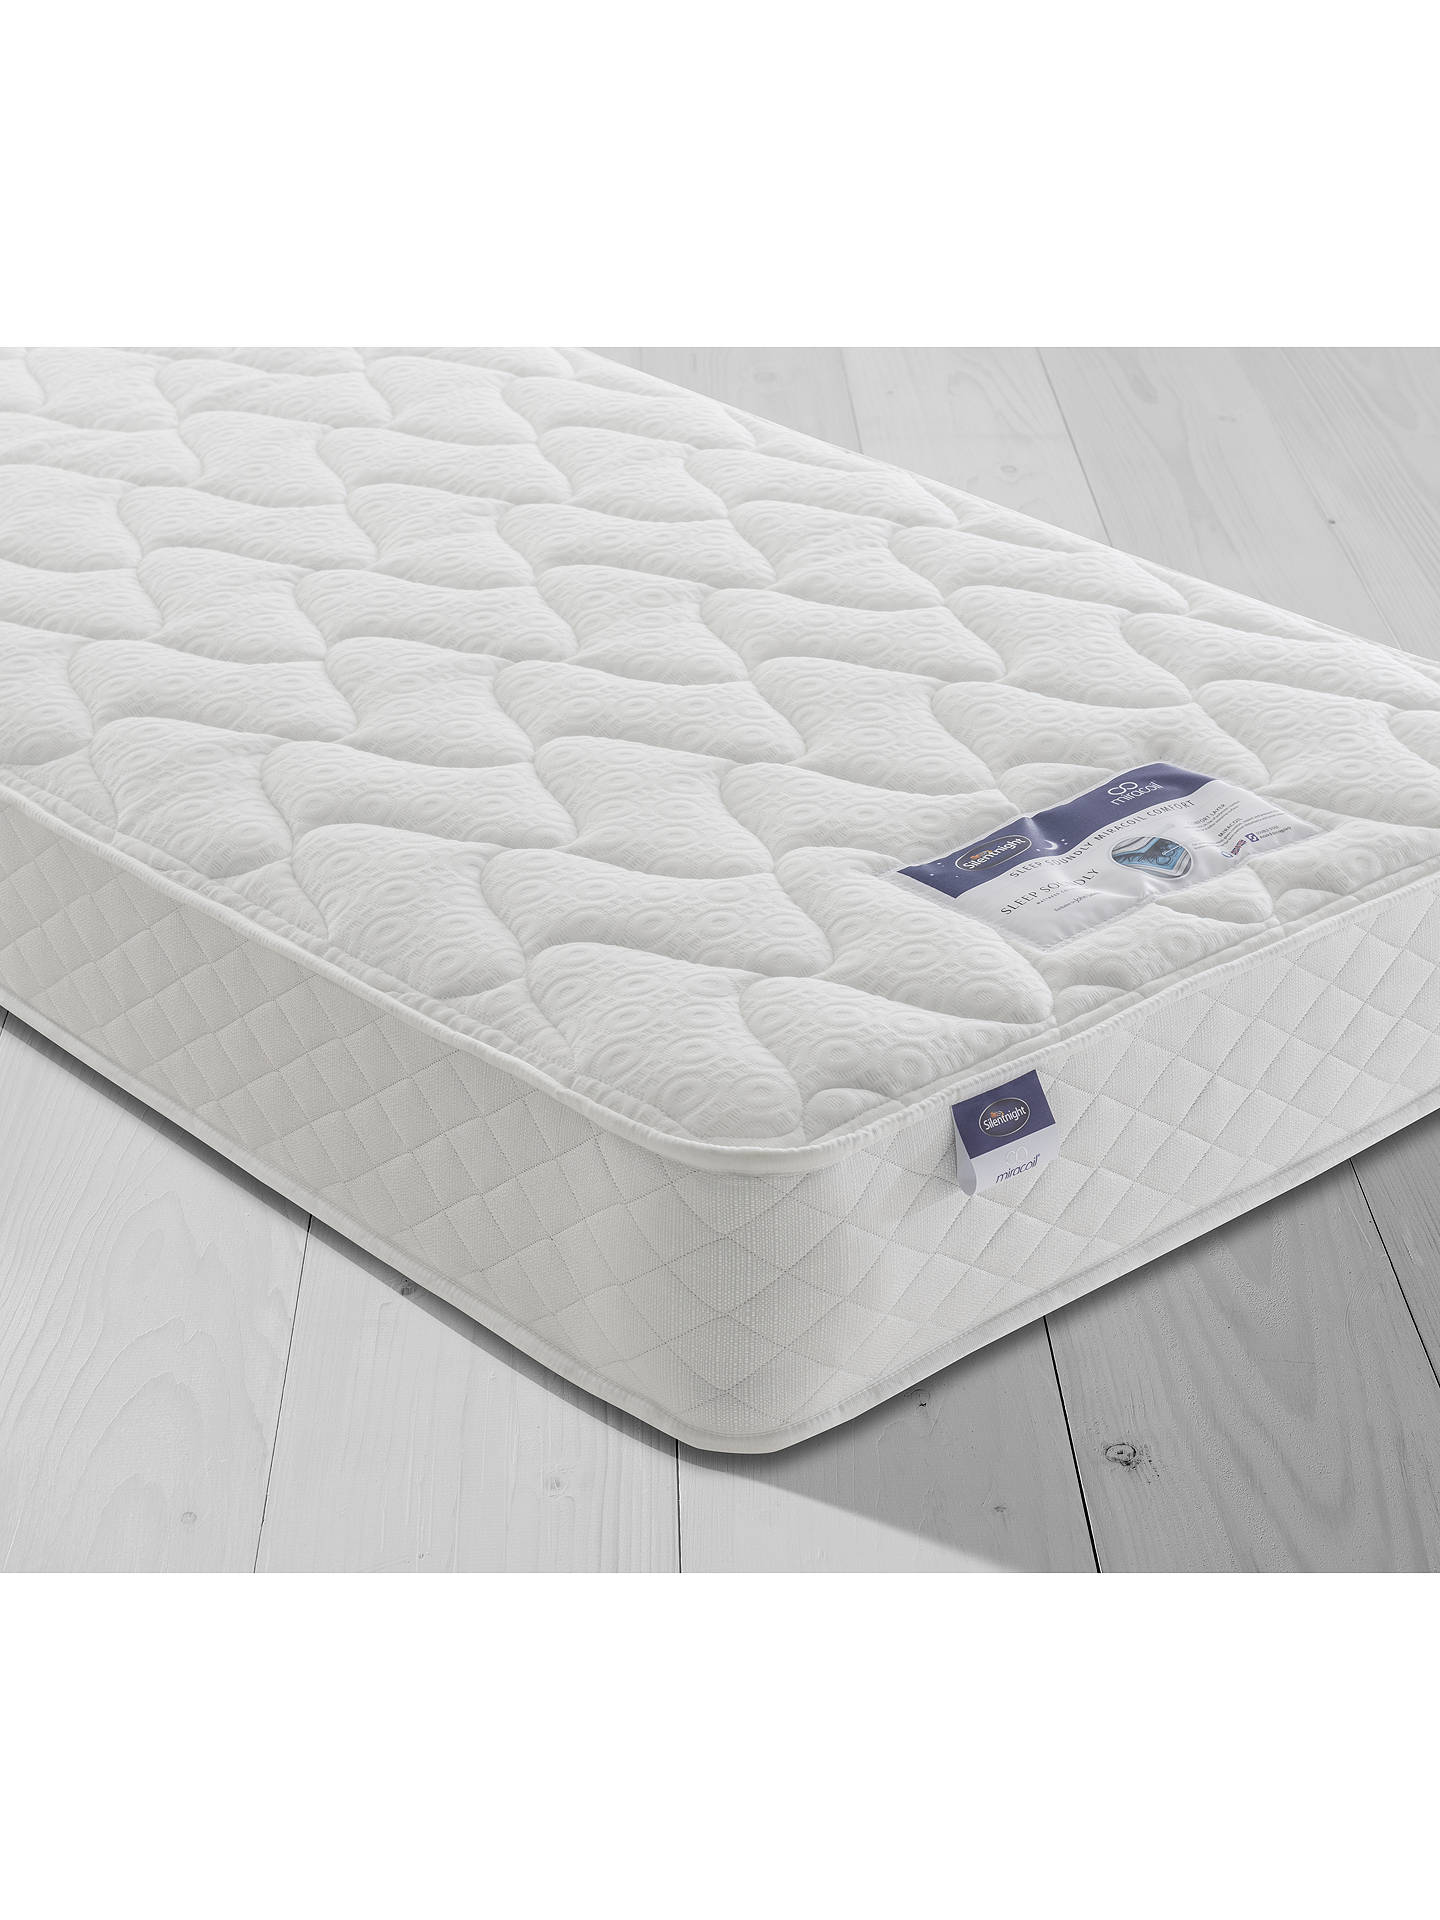 new products 2d348 187be Silentnight Sleep Soundly Miracoil Comfort Divan Base and Mattress Set,  FSC-Certified (Picea Abies, Chipboard), Firm, Single